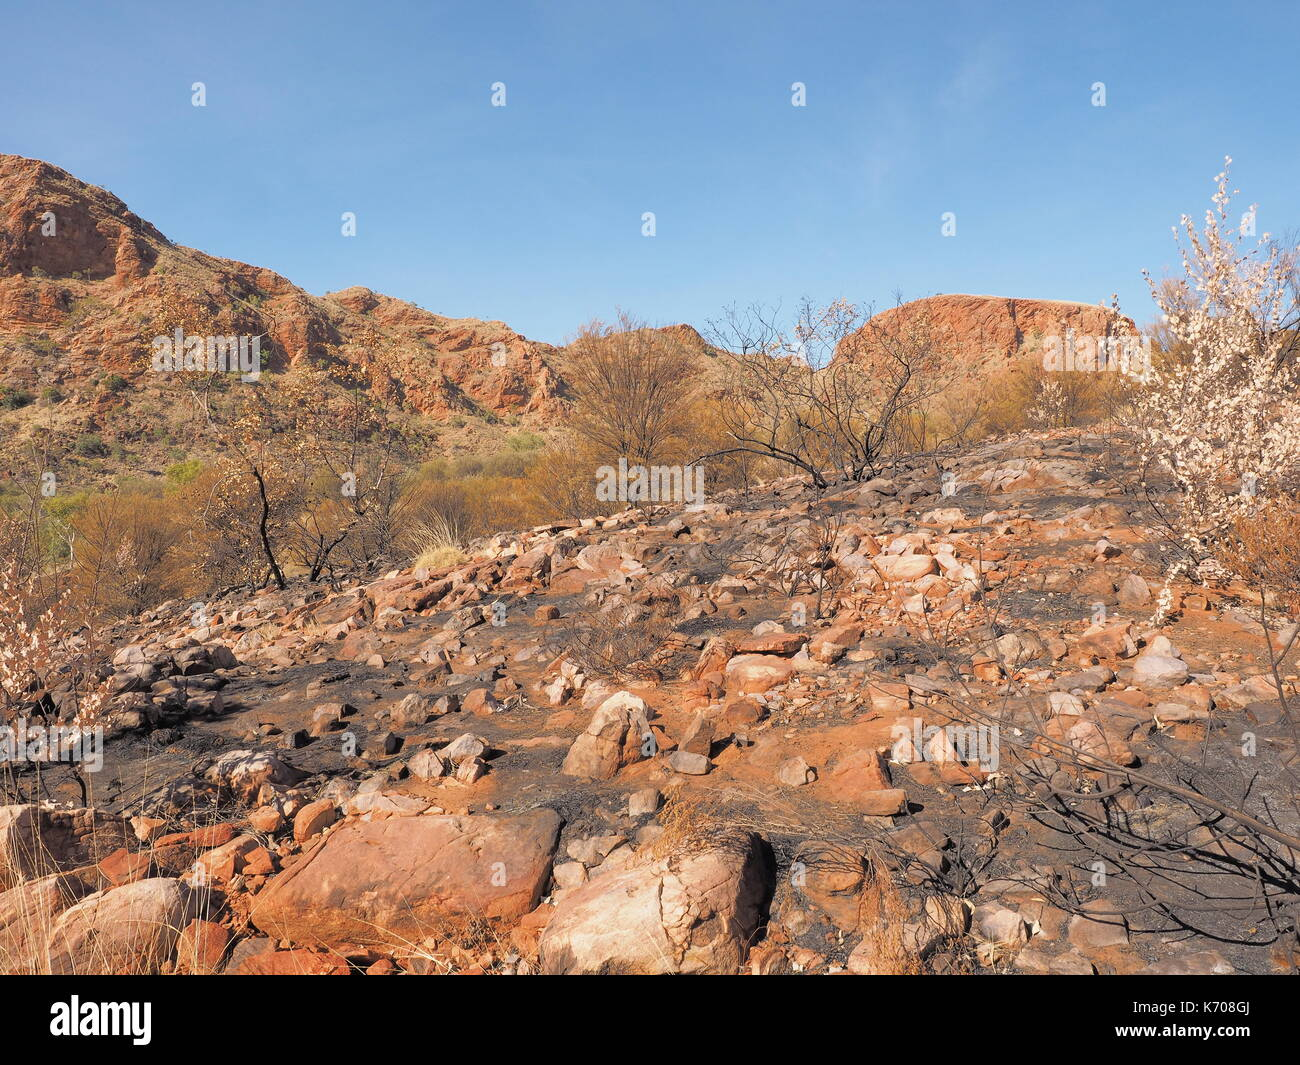 The track along the ridge of Trephina Gorge to Turners lookout, east MacDonnell ranges near Alice Springs, Northern Territory, Australia 2017 - Stock Image